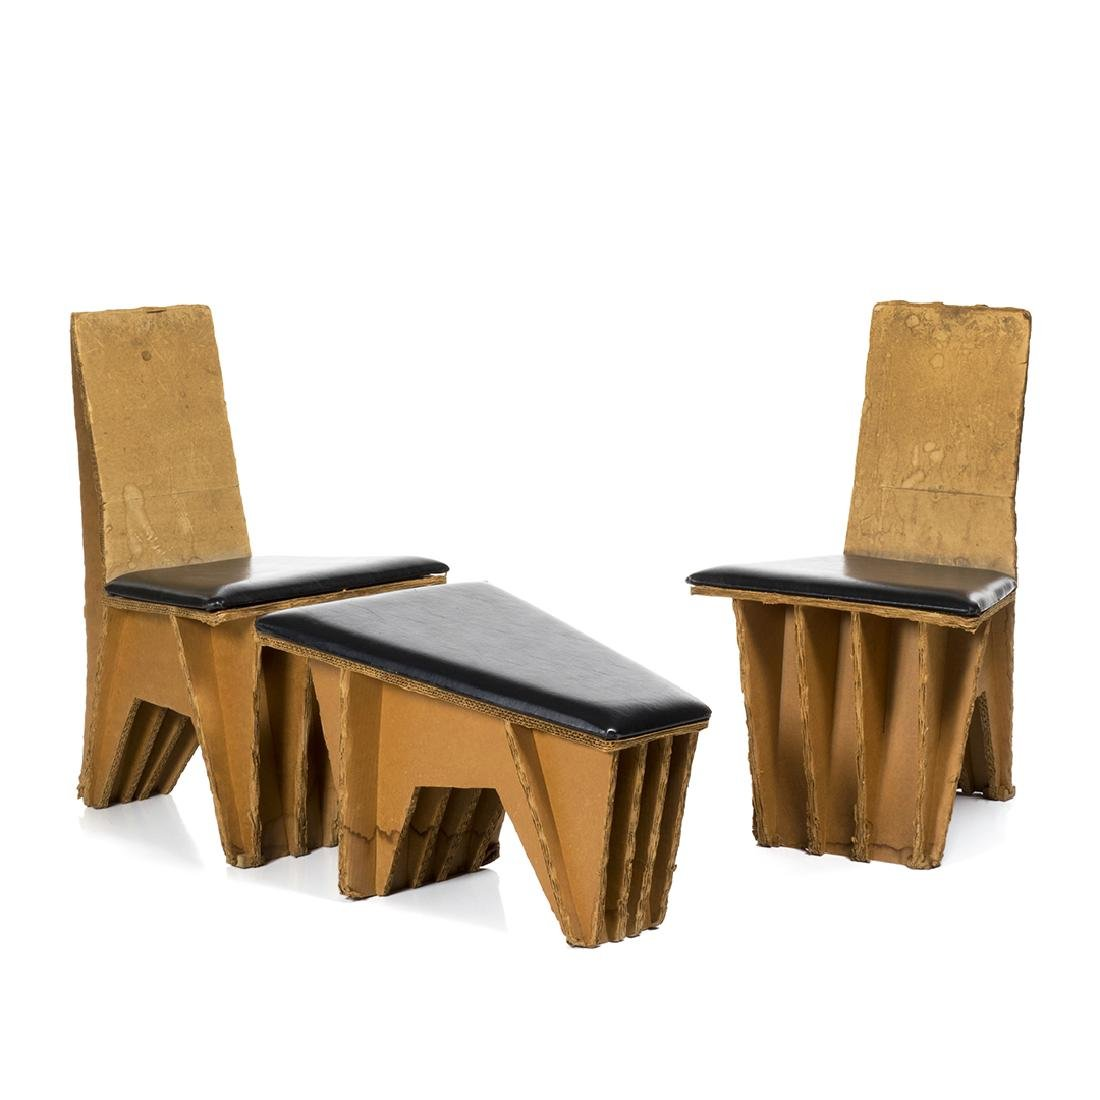 Joel Stearns Chairs and Ottoman (3)